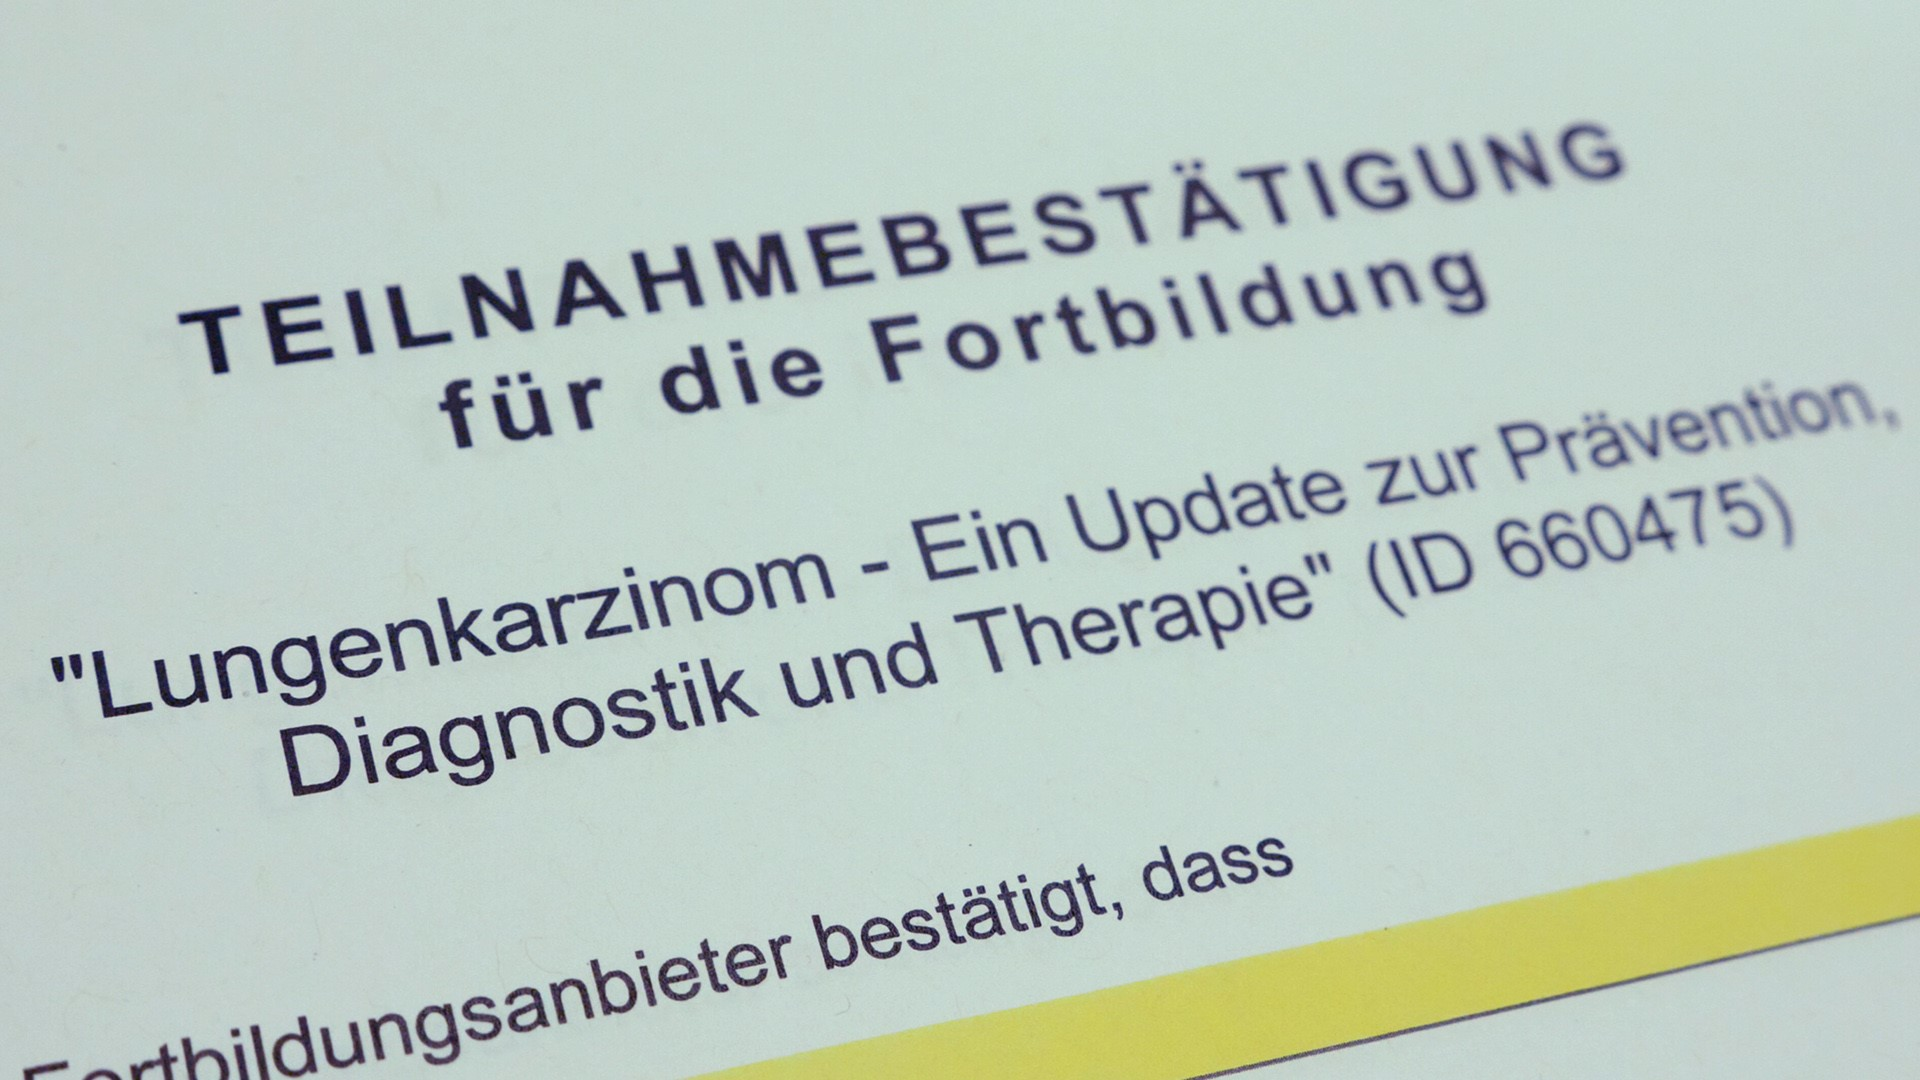 Lungenkarzinom: Ein Update zur Prävention, Diagnostik & Therapie - VIDEO